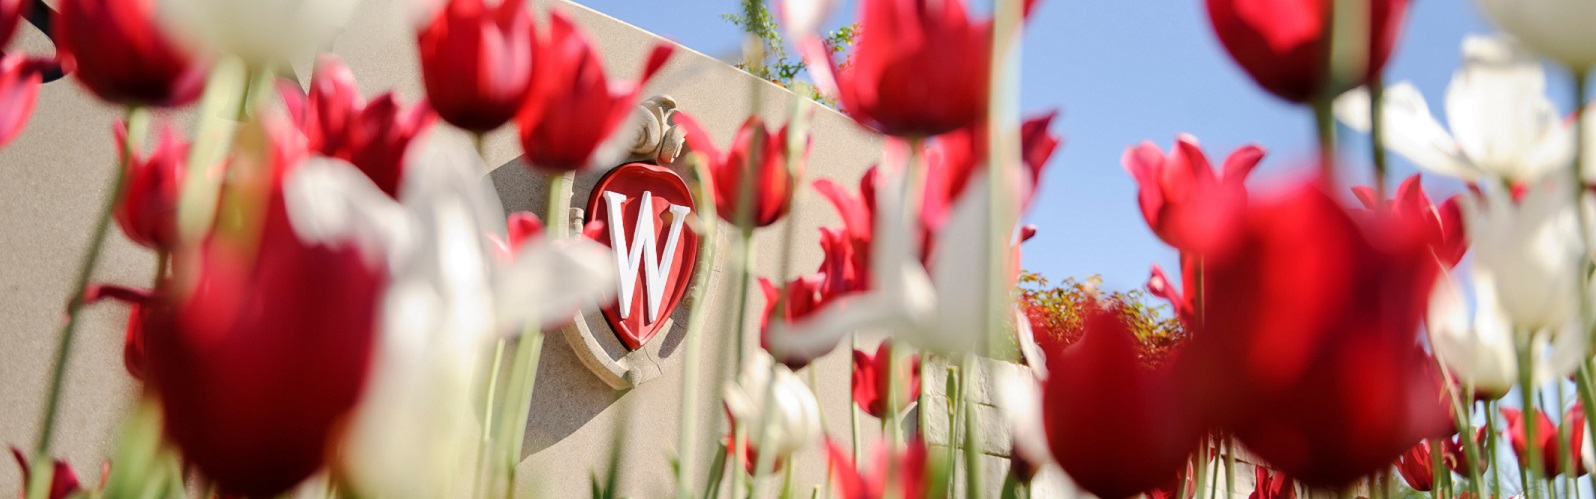 W with tulips